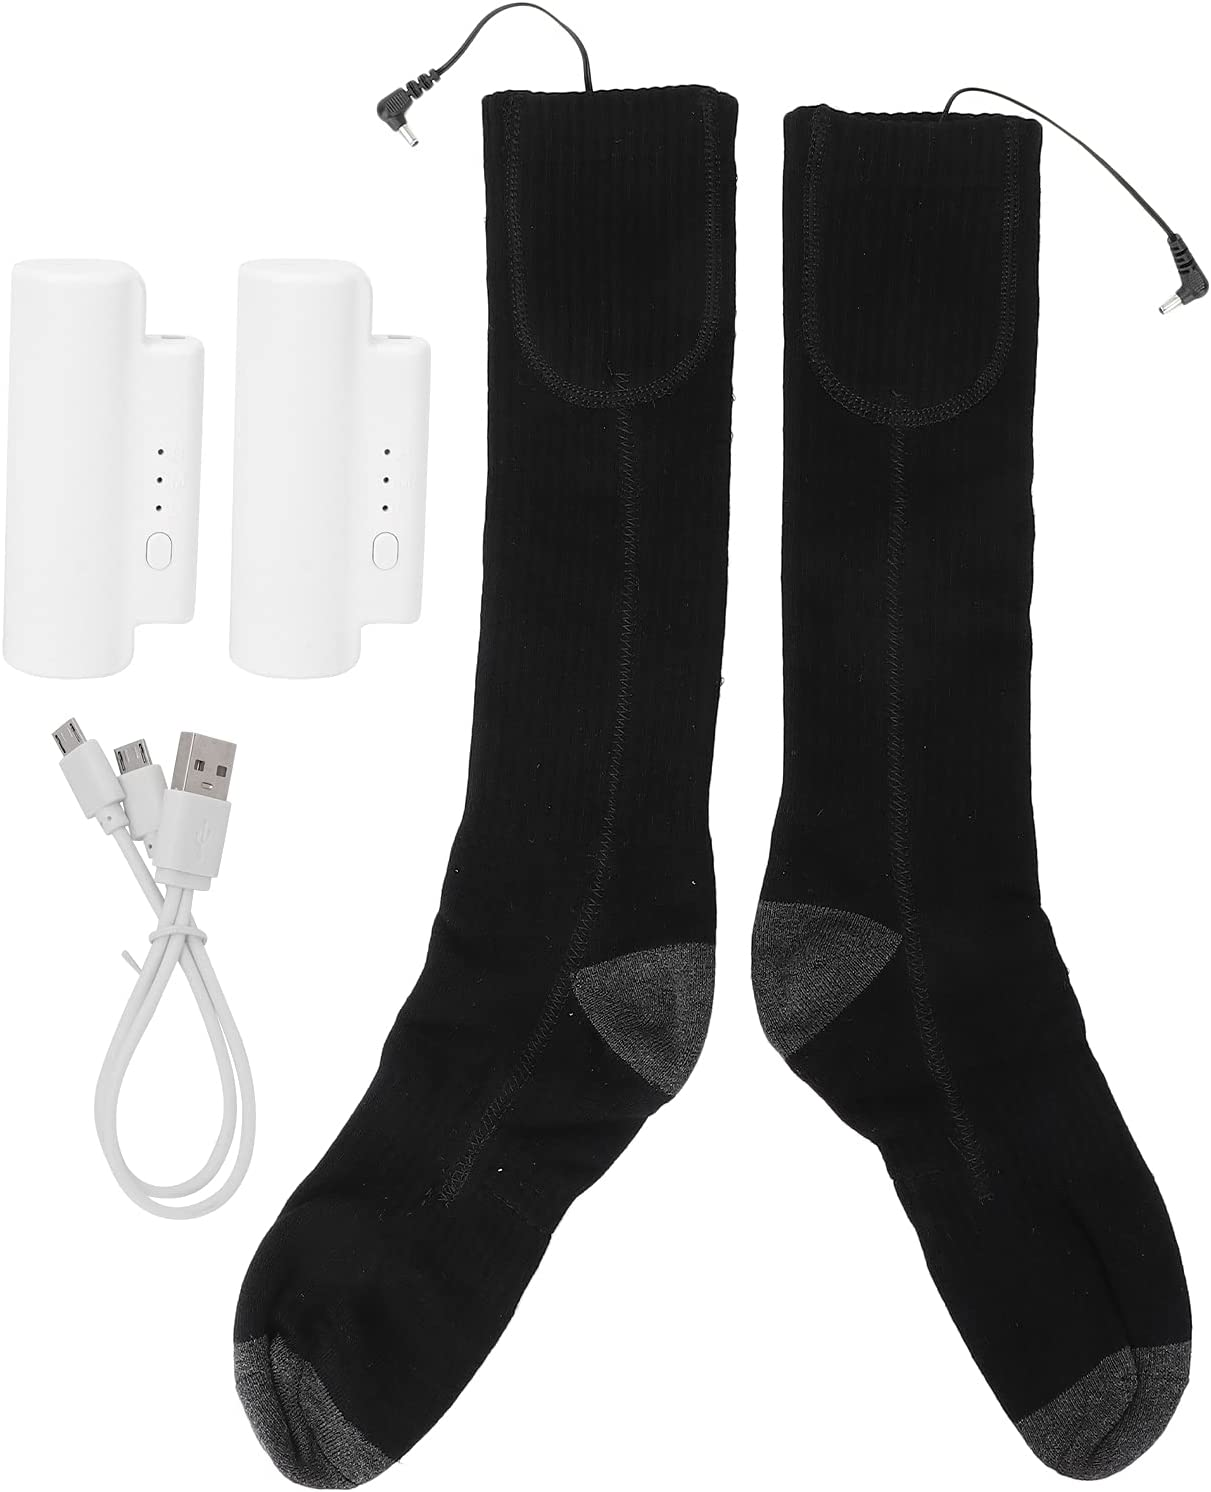 LIKJ Electric Heating Socks Cotton All items Ranking TOP5 free shipping Soft Thermal